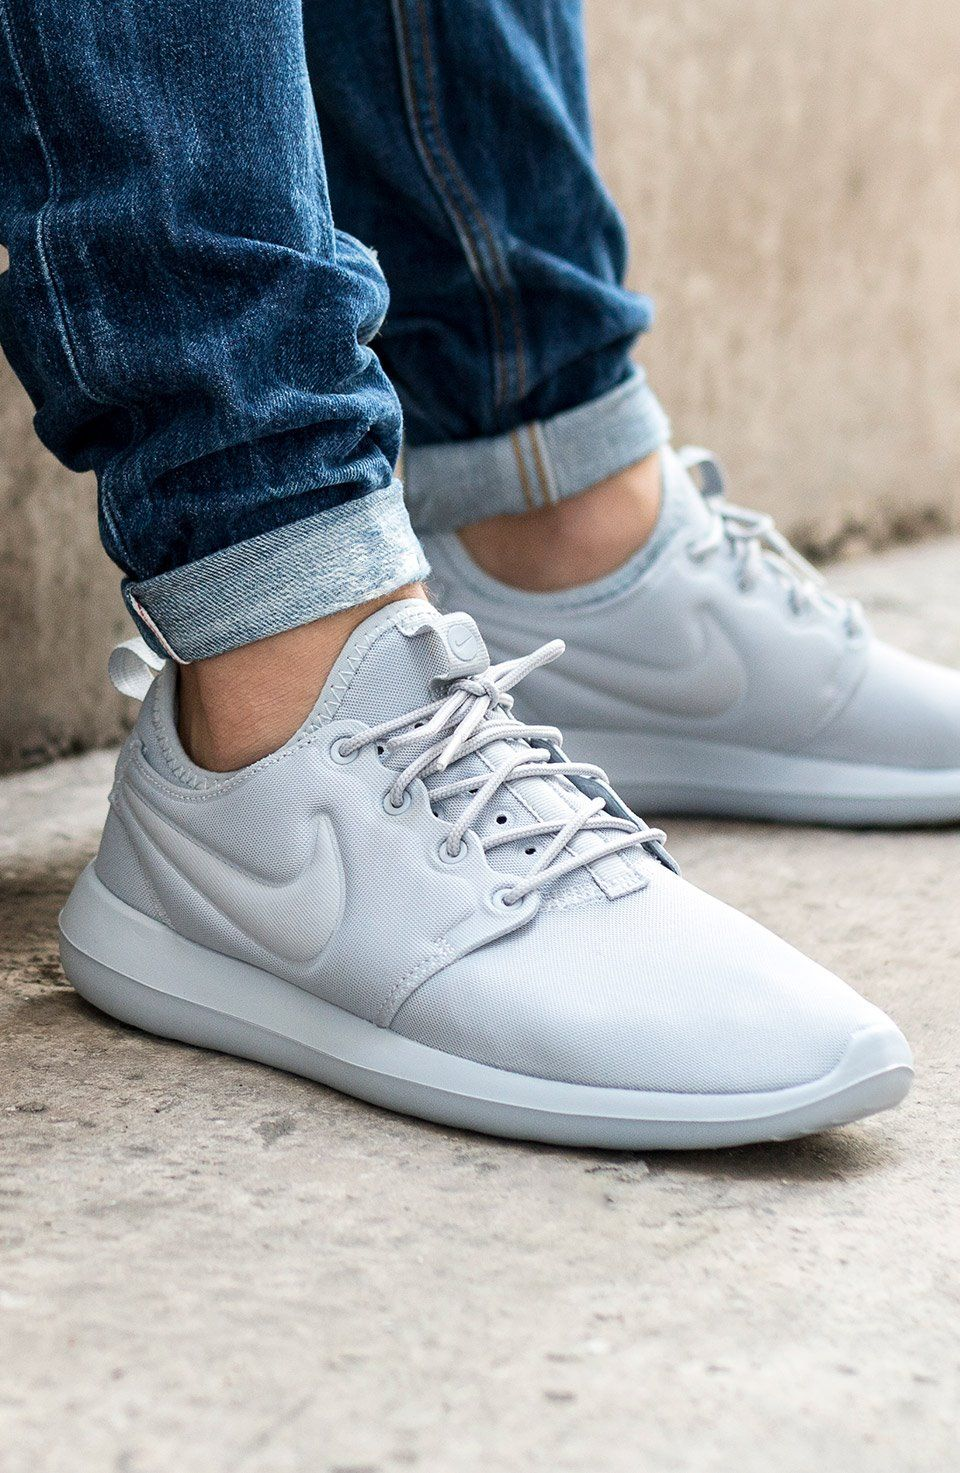 a8b436dd4f53 Nike Roshe Two Wolf Grey  sneakernews  Sneakers  StreetStyle  Kicks